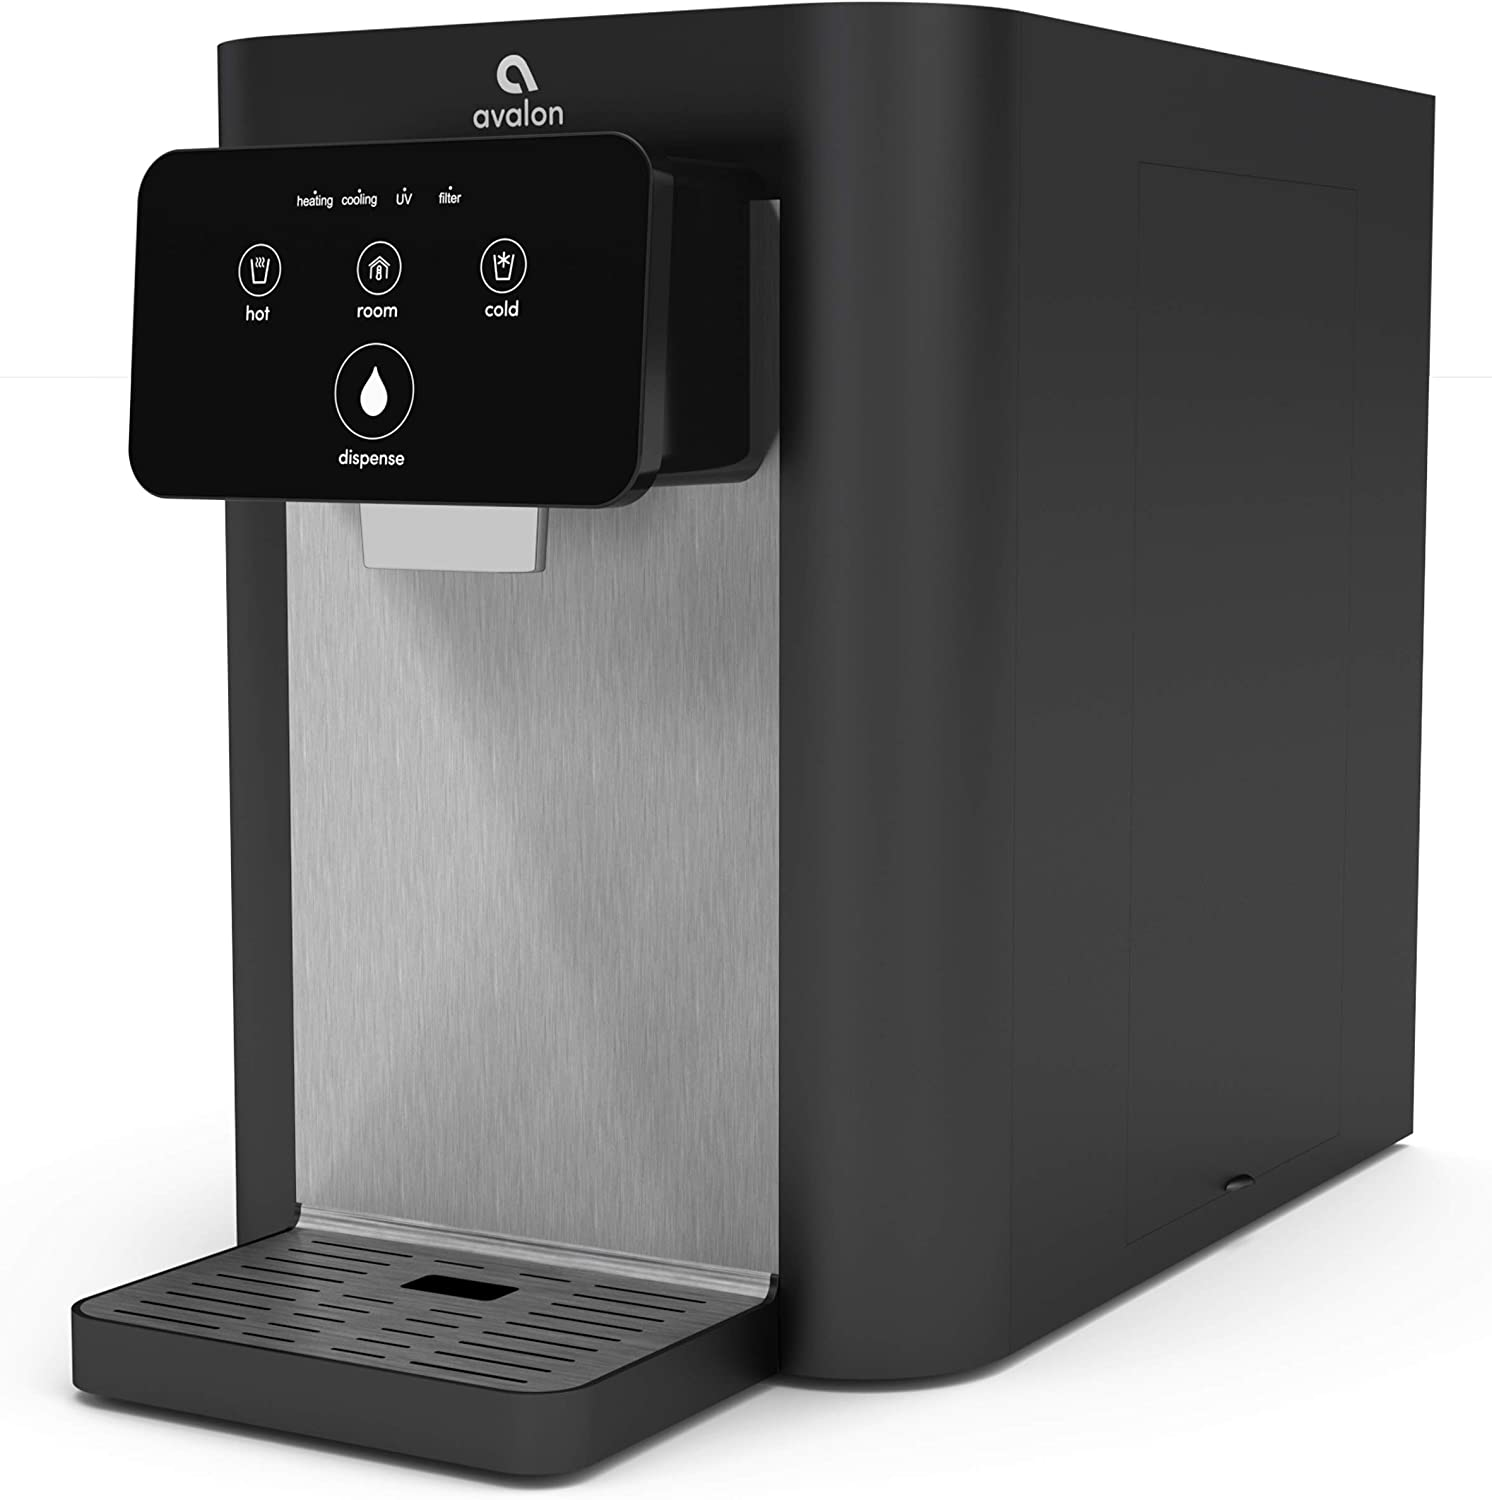 Avalon A9 Electric Touch Bottleless Cooler Water Dispenser-3 Temperatures, UV Cleaning, Electronic Countertop